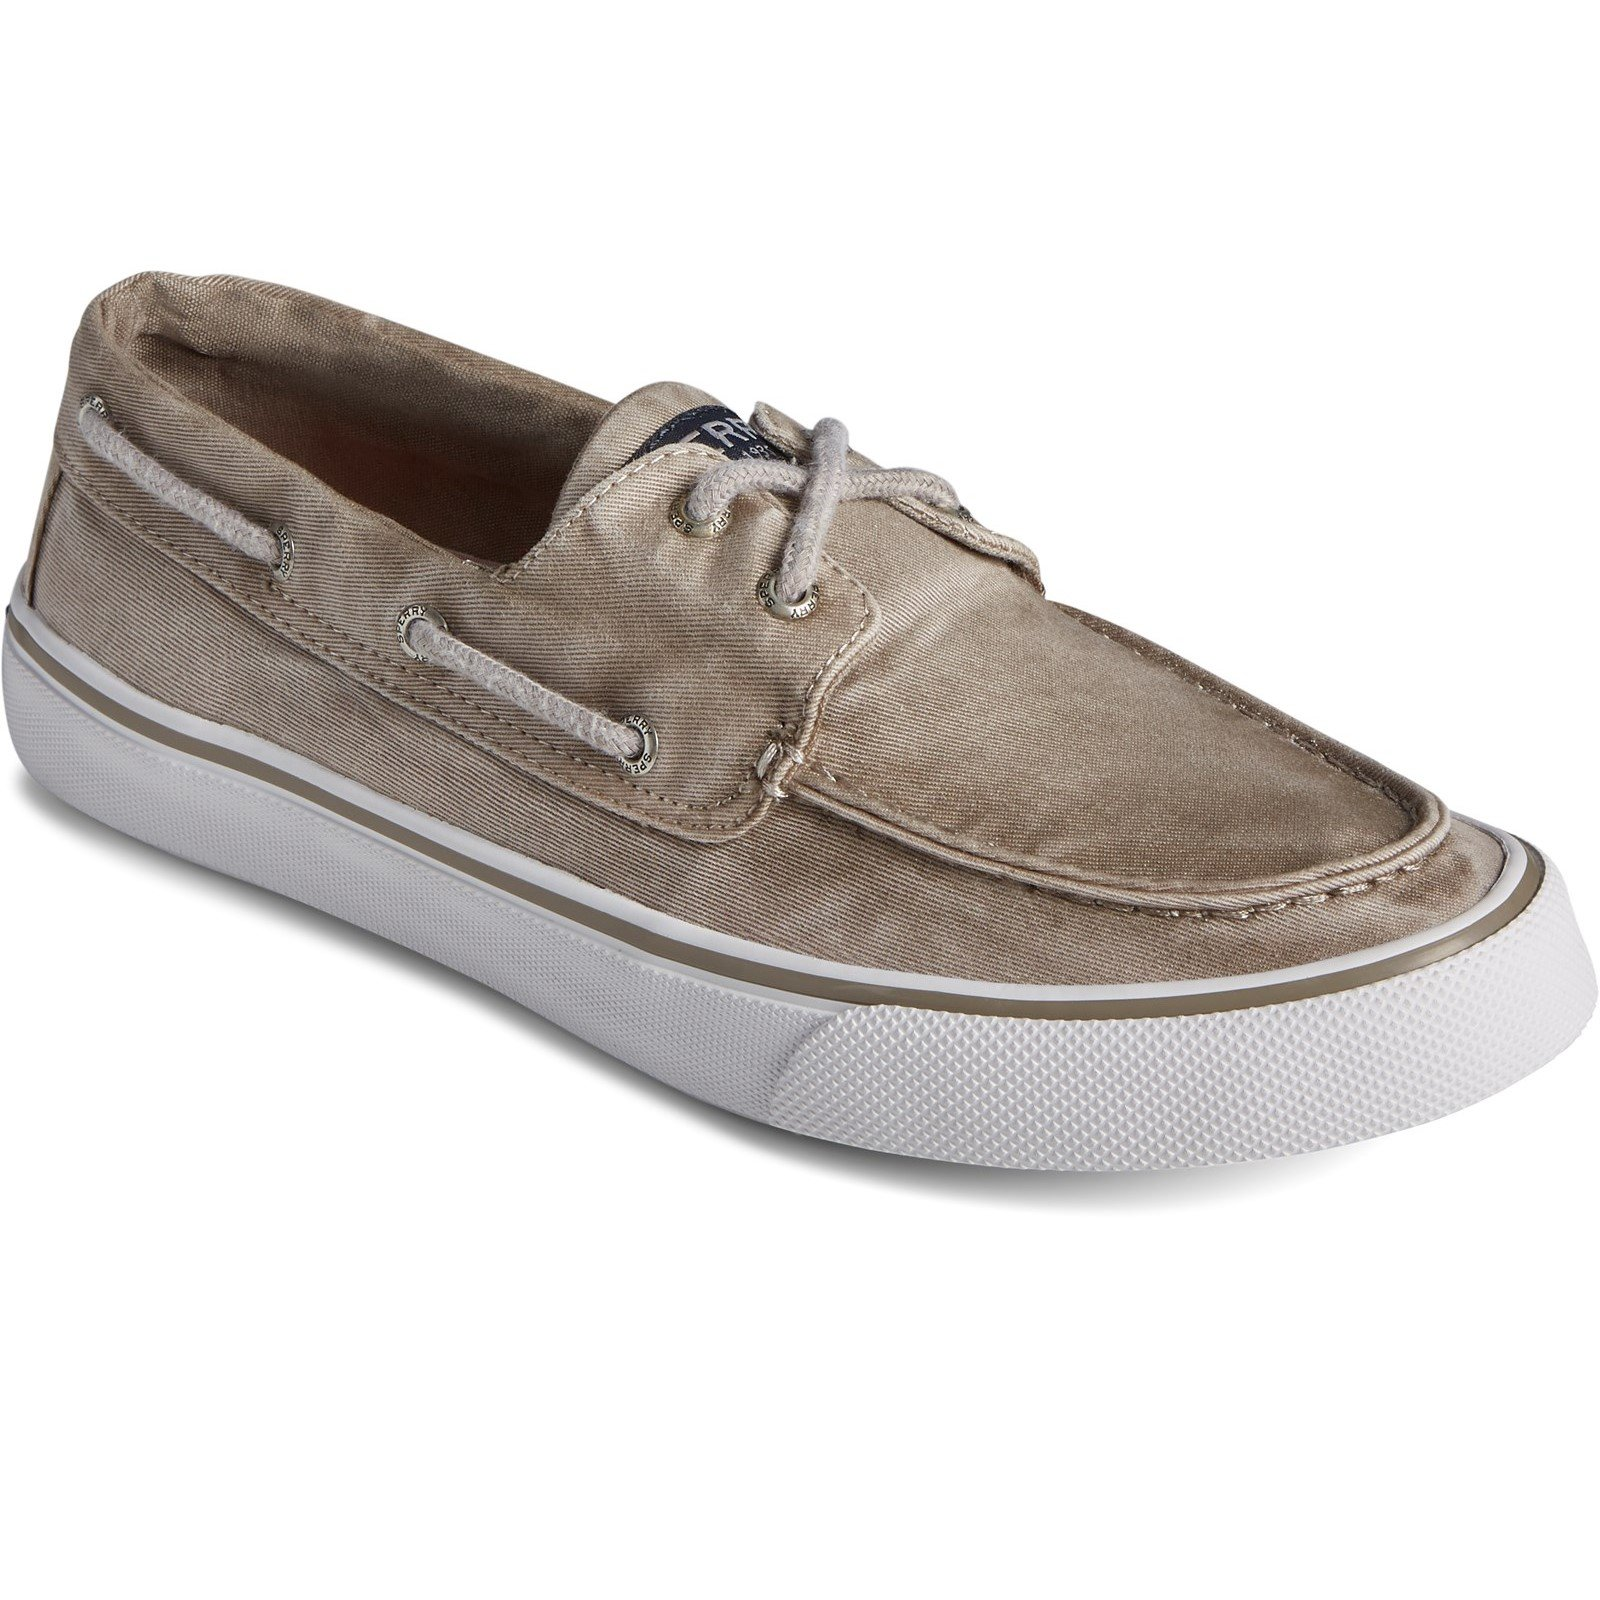 Sperry Men's Bahama II Boat Shoe Various Colours 32923 - Taupe 8.5